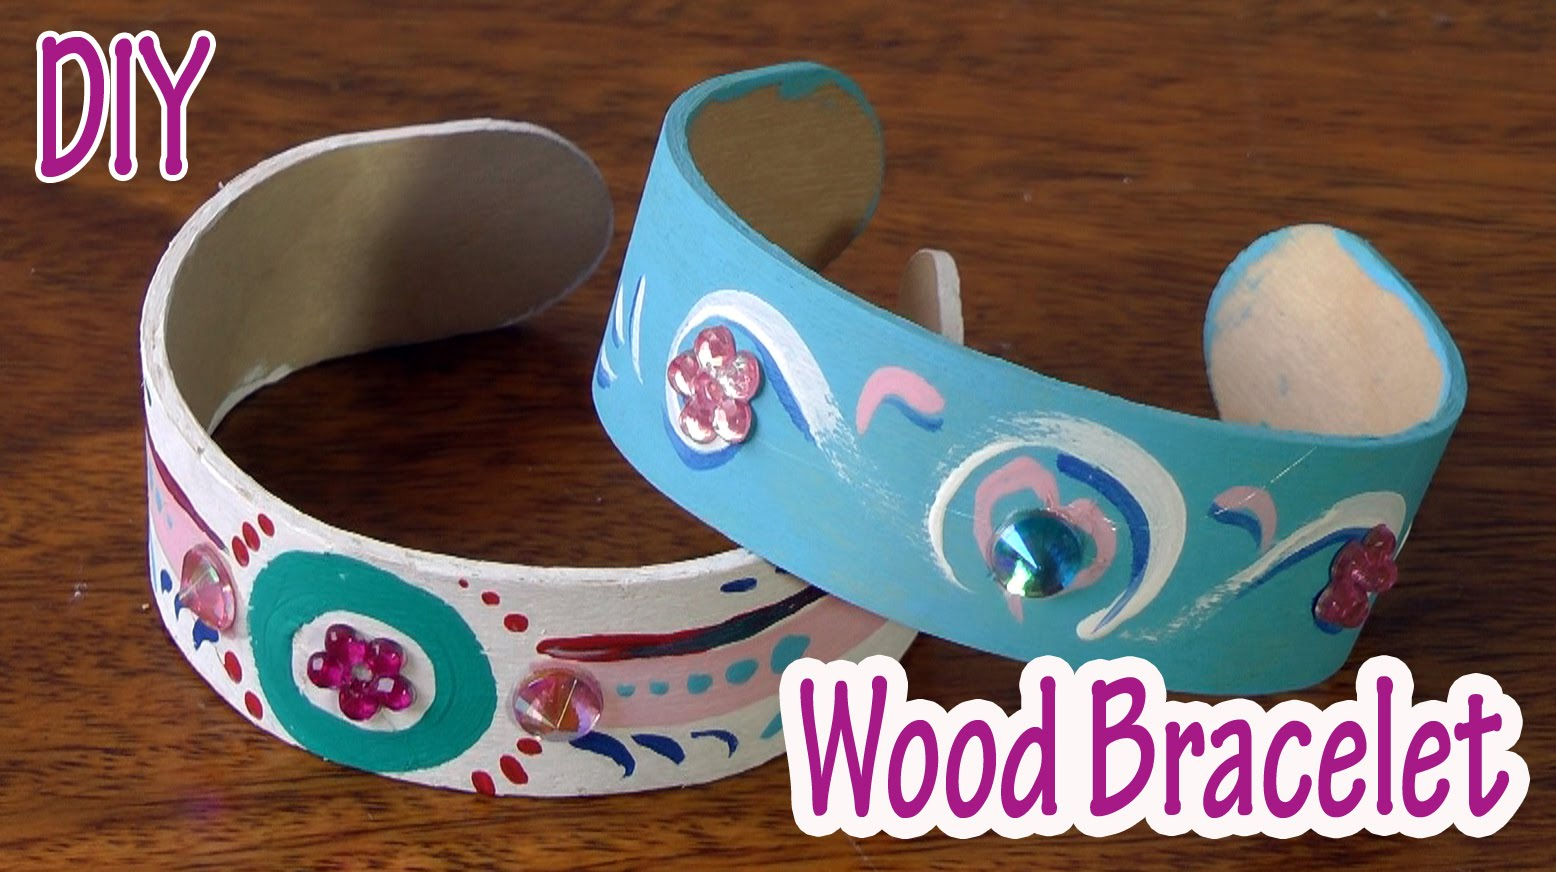 DIY crafts : Wood Bracelet – Ana | DIY Crafts